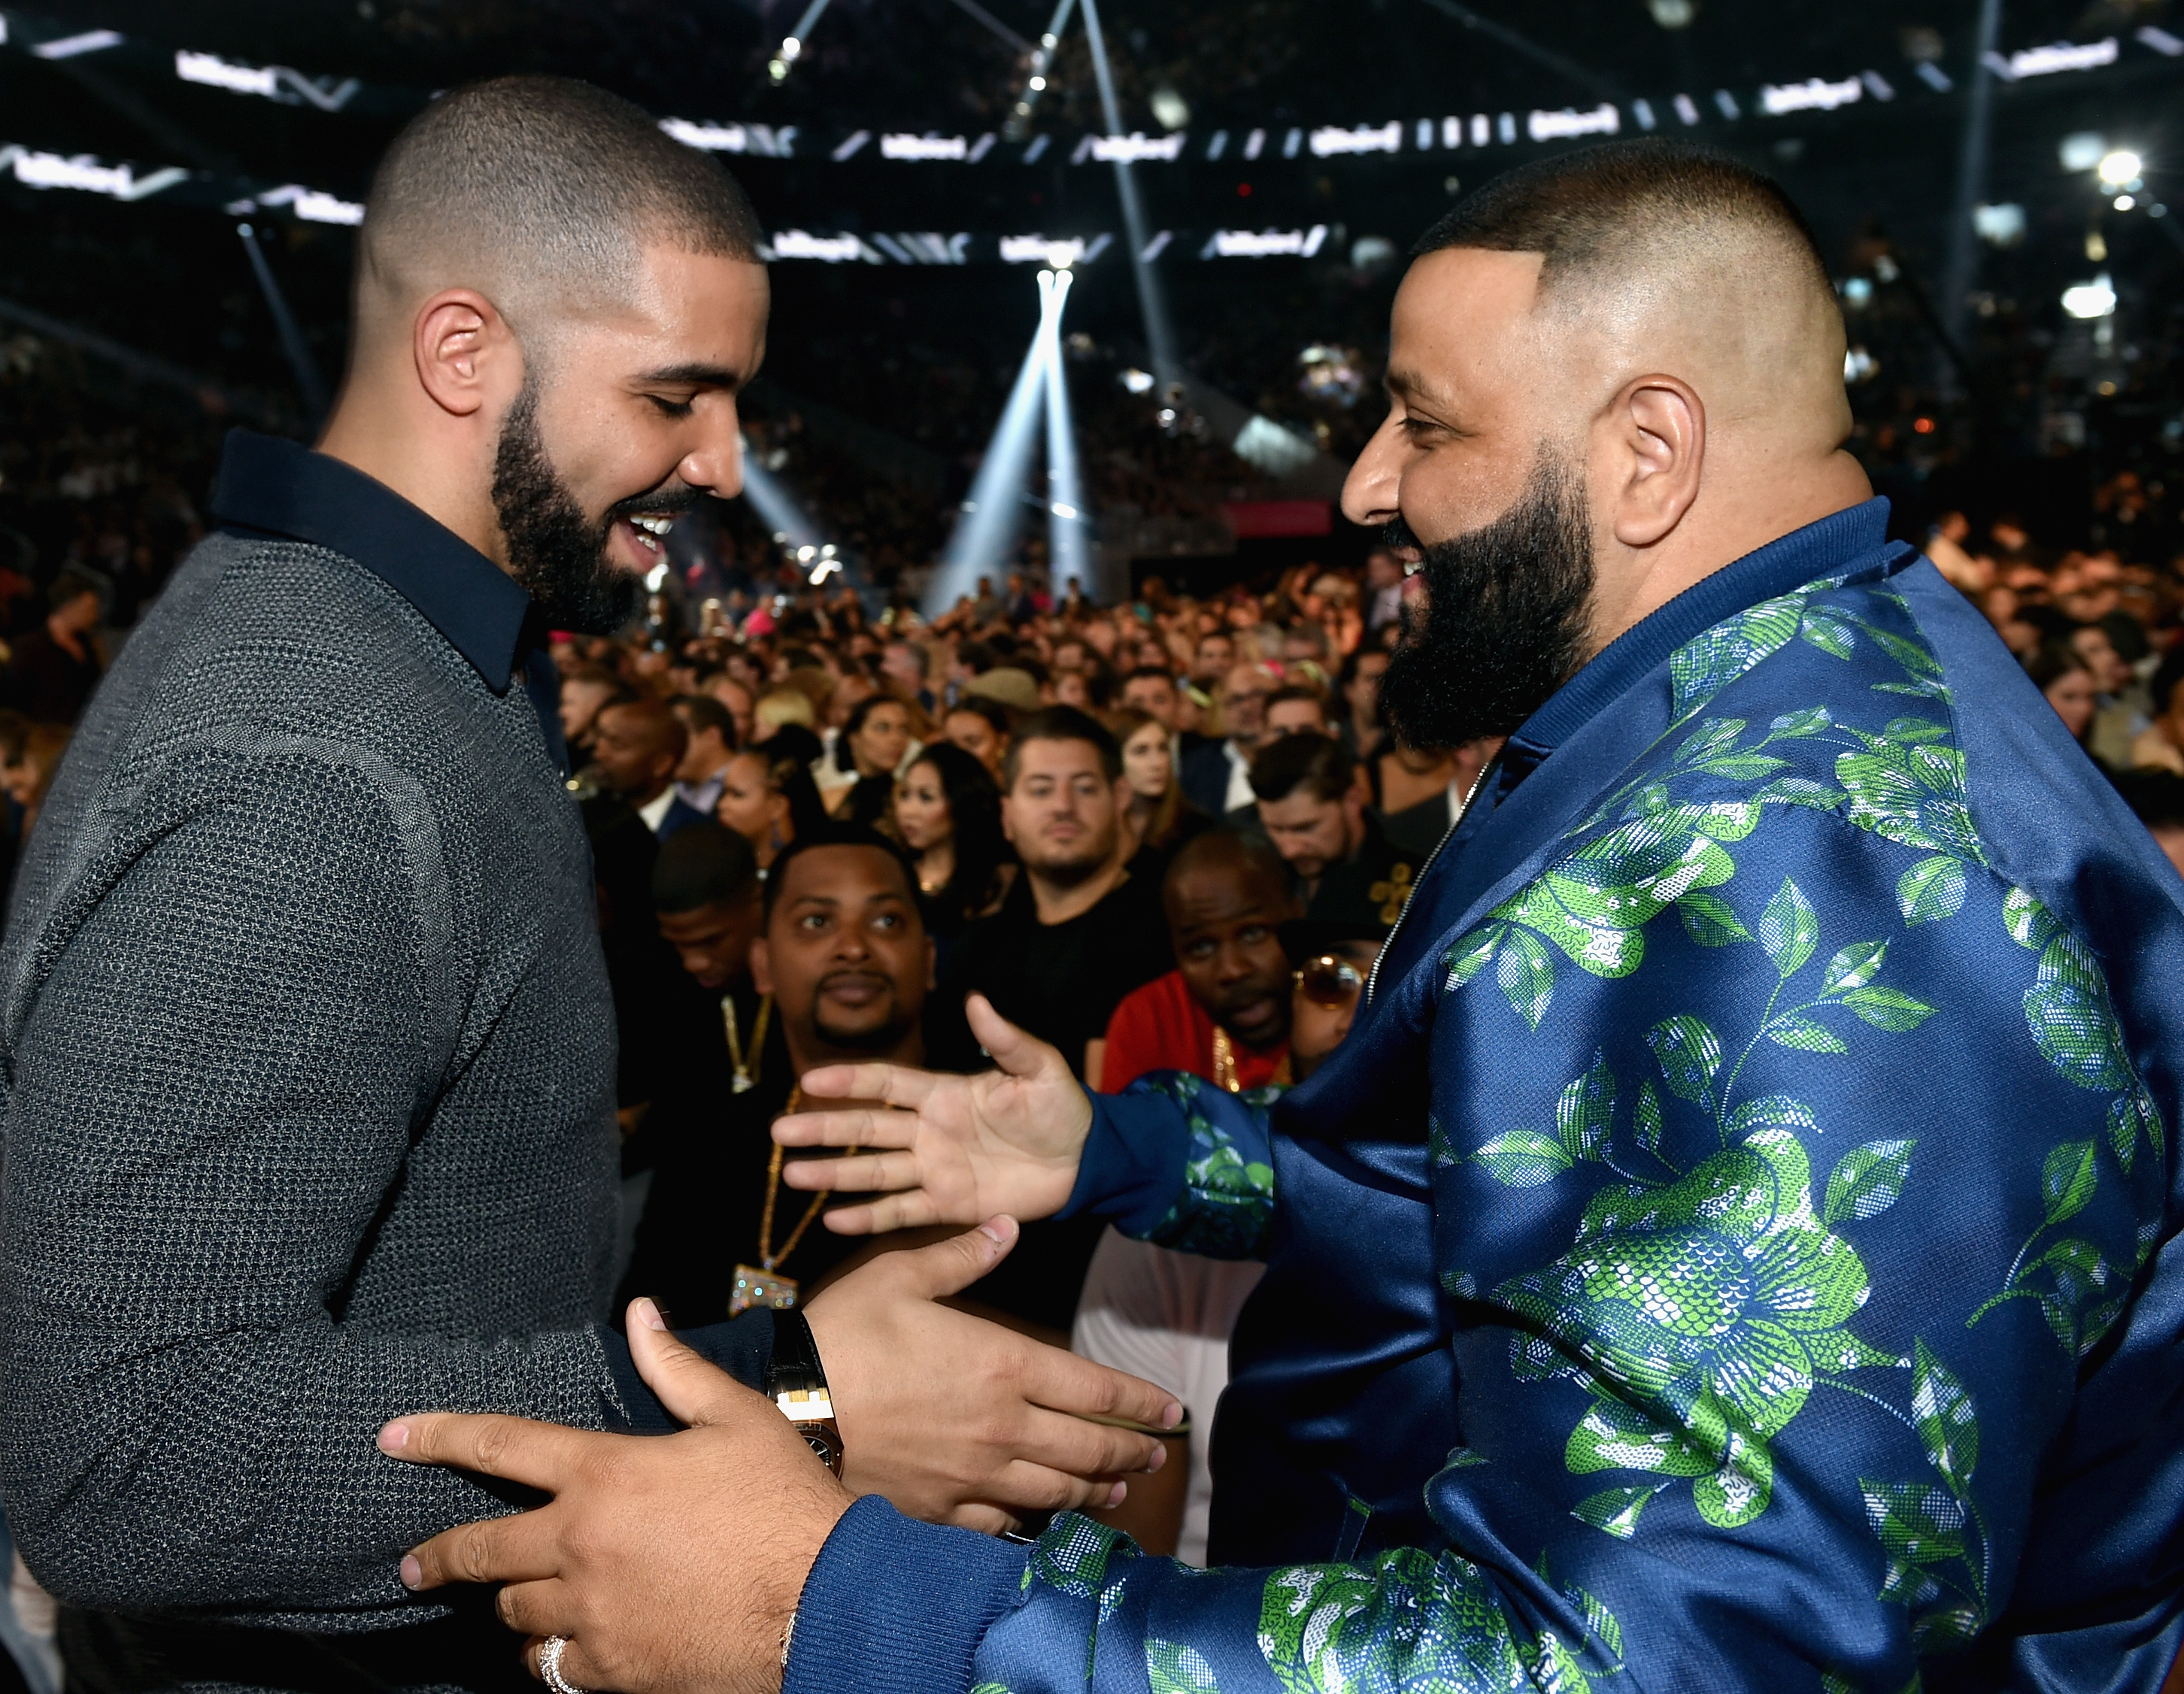 2017 Billboard Music Awards - Backstage and Audience